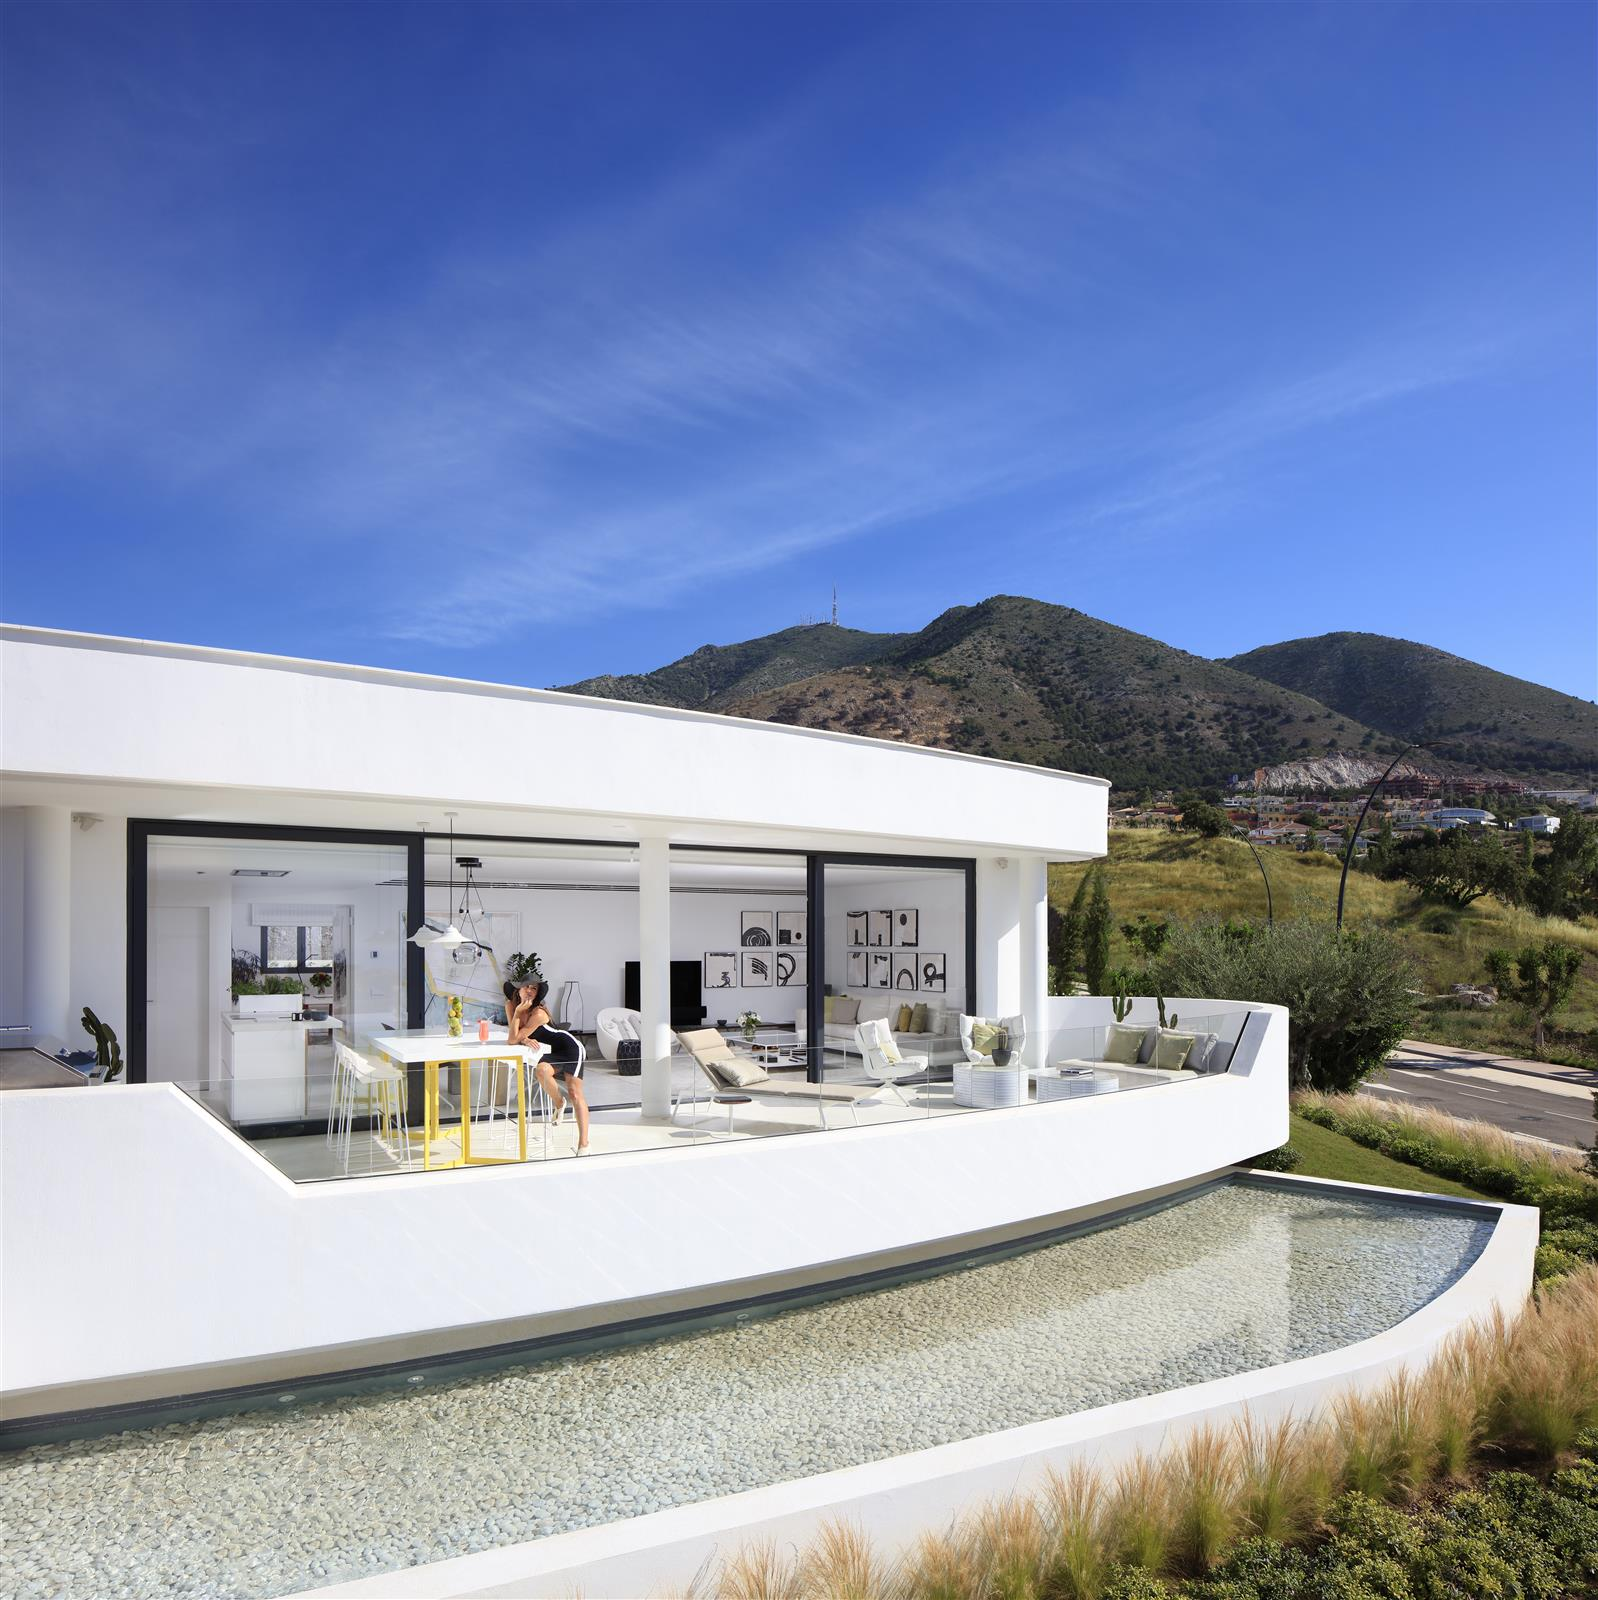 Contemporary and Eco-friendly development in Fuengirola in